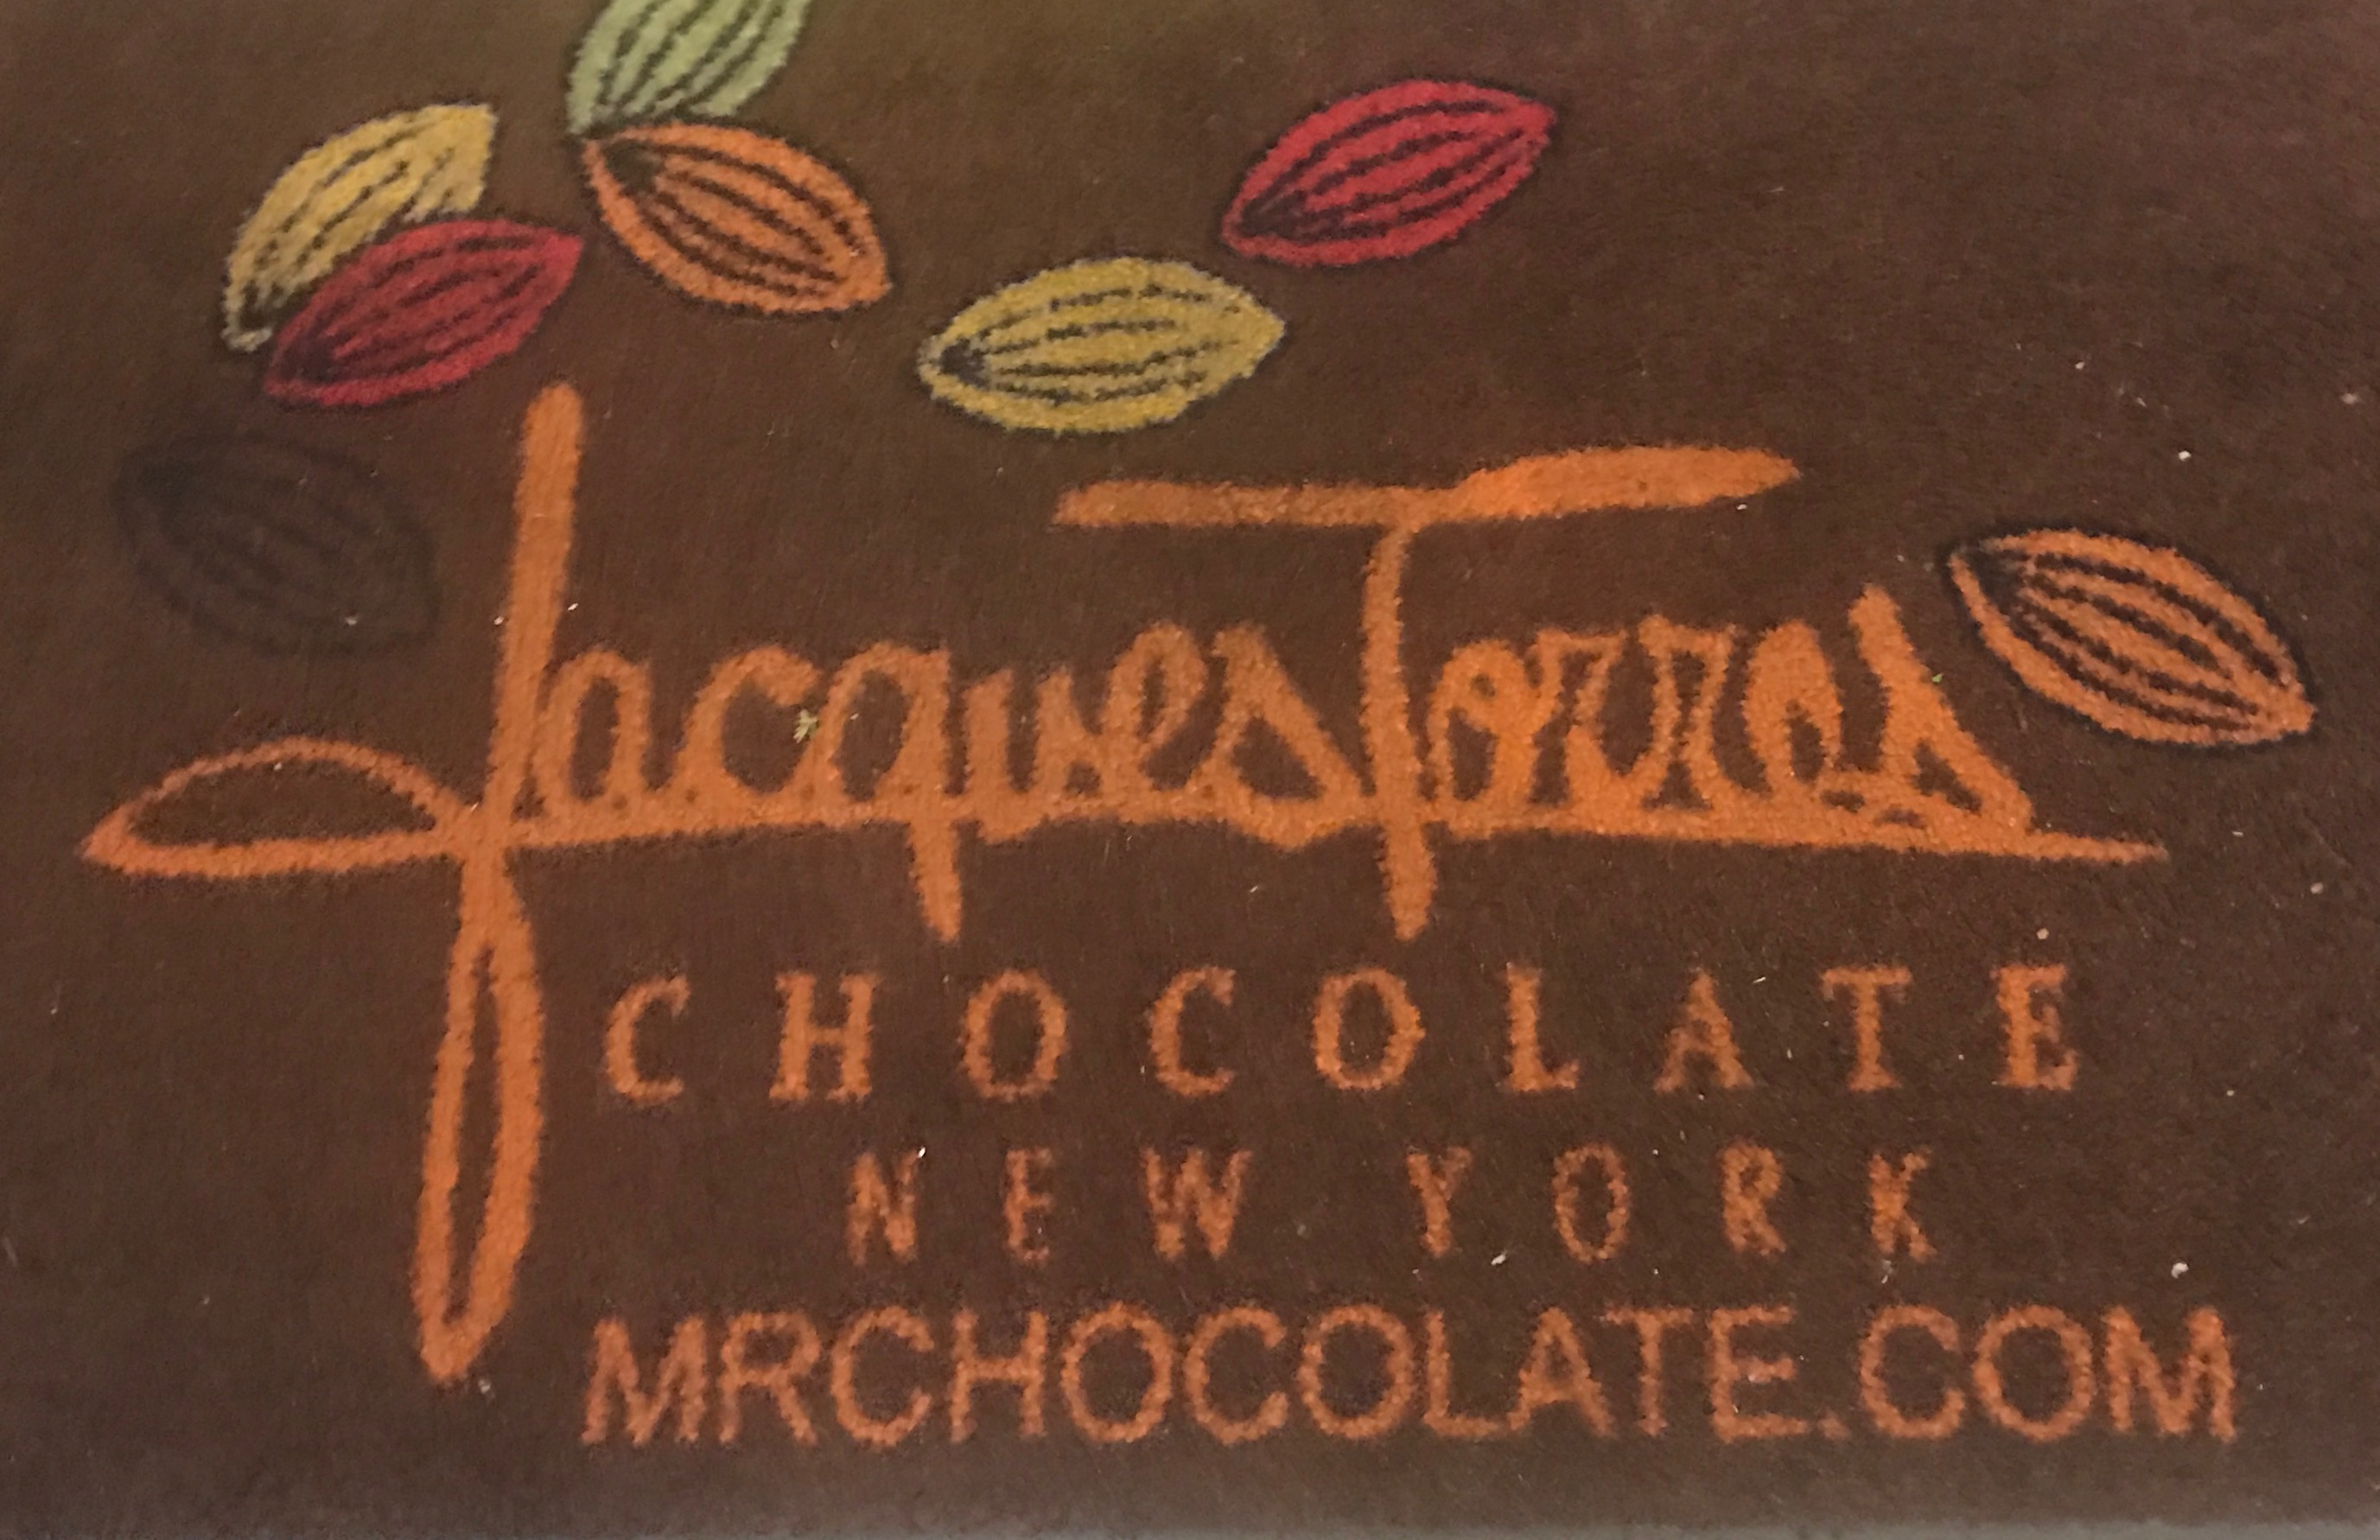 Choco Story New York (The Chocolate Museum New York) * Ginger on the Go